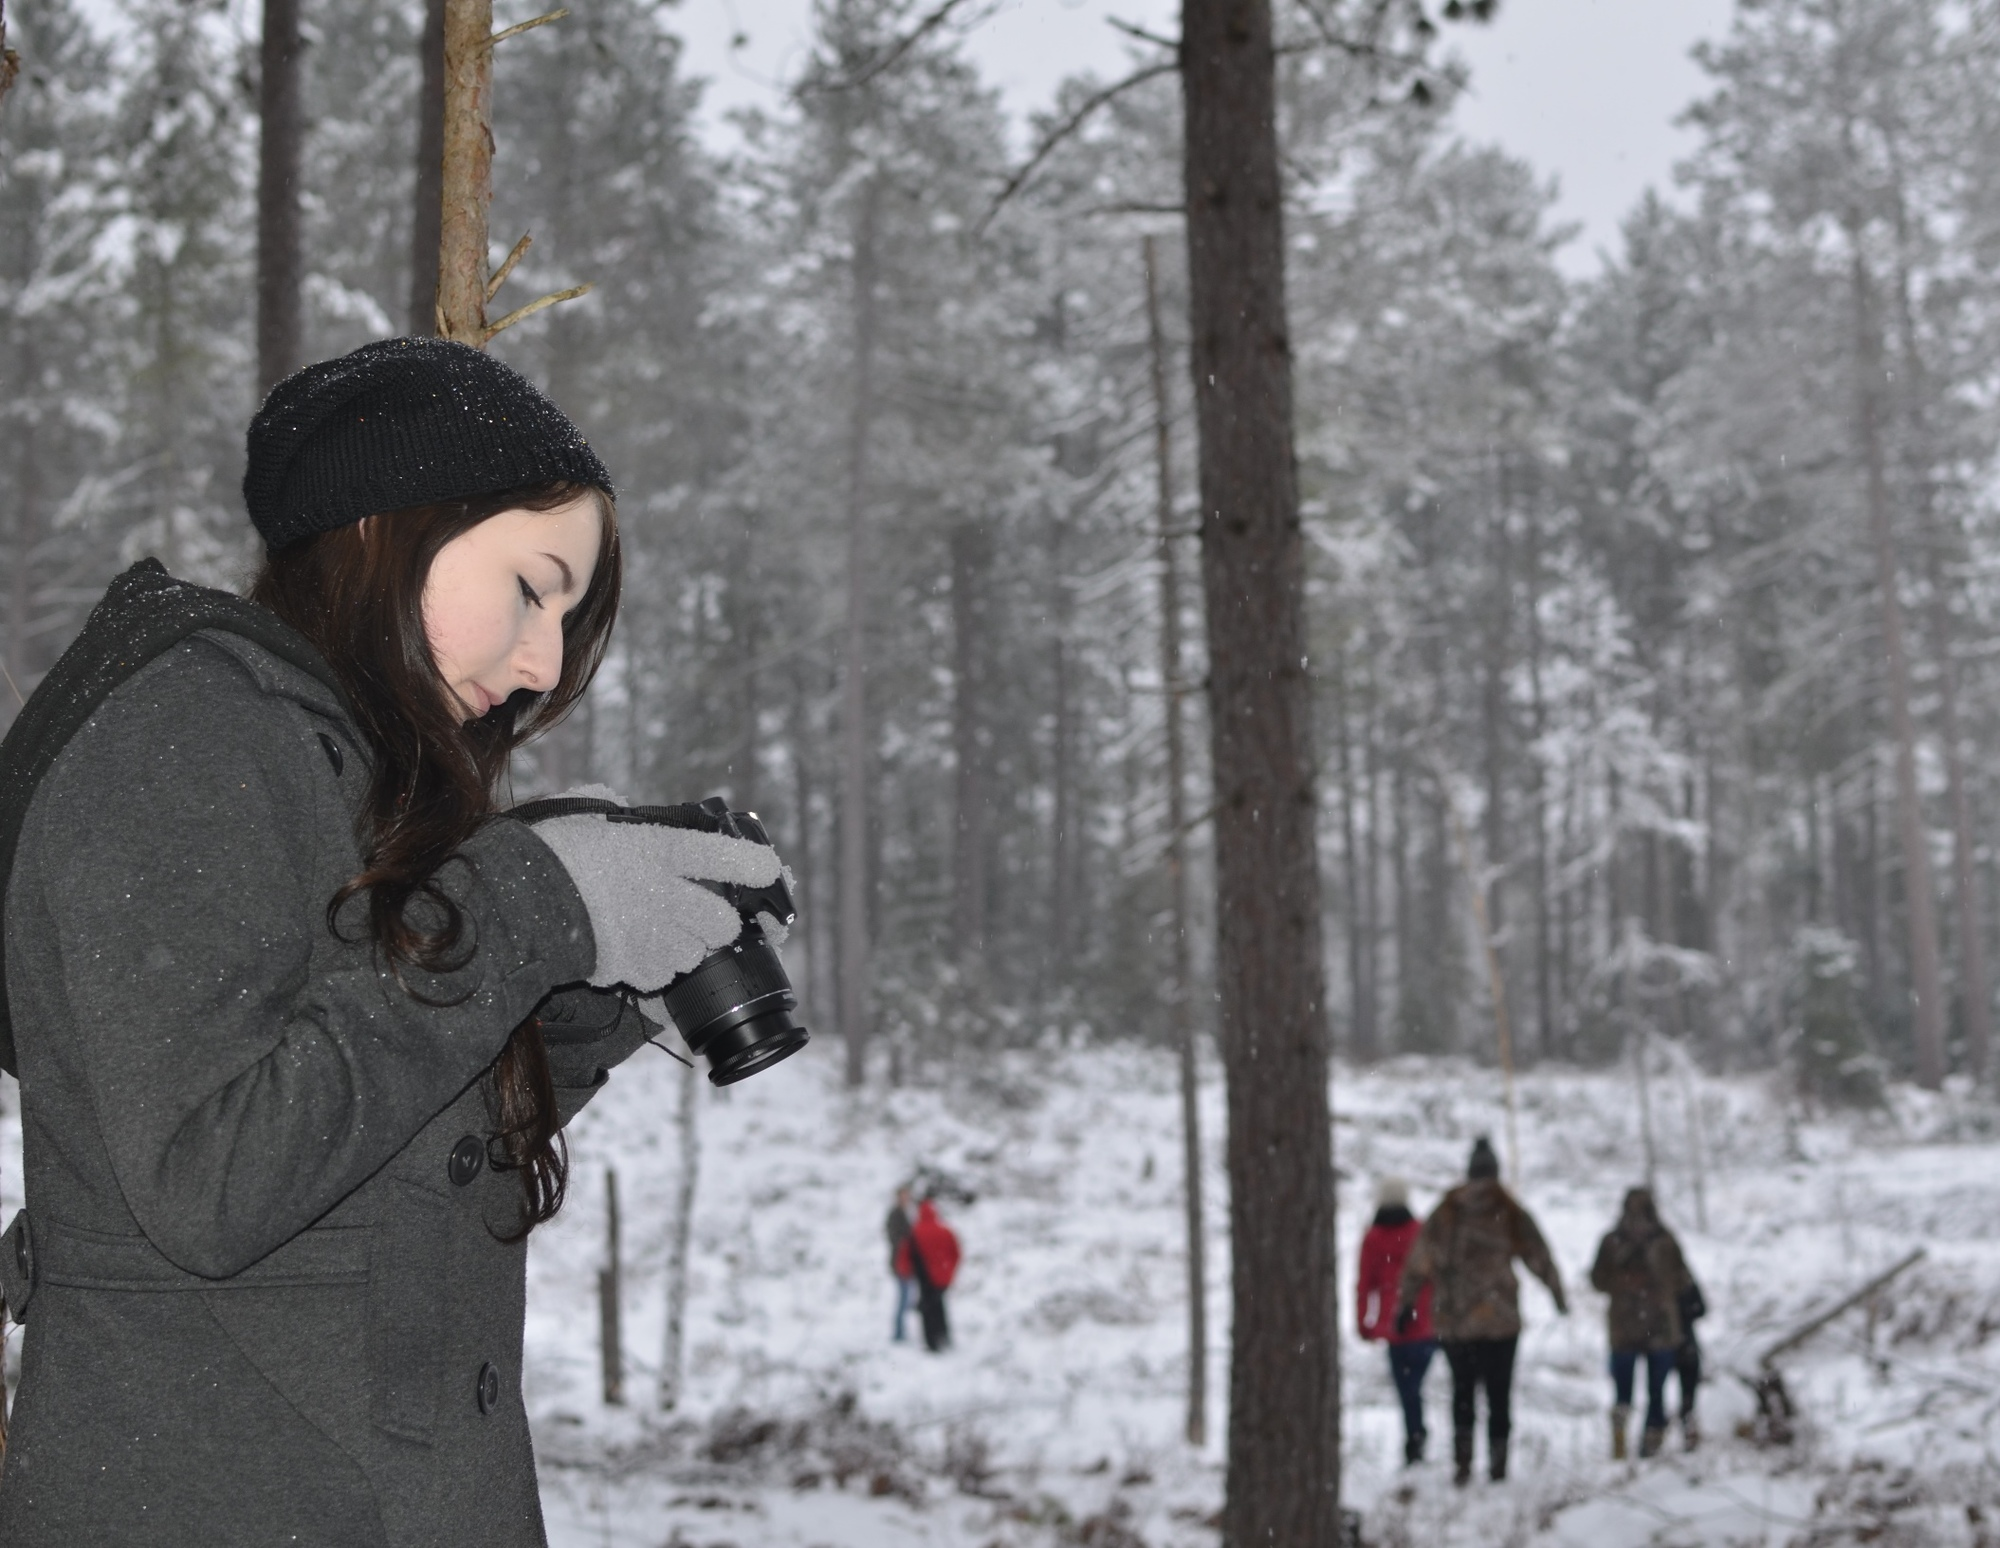 Andrea Gerstner, 16, of Sagola looks at an image she just shot in a snowy forest.